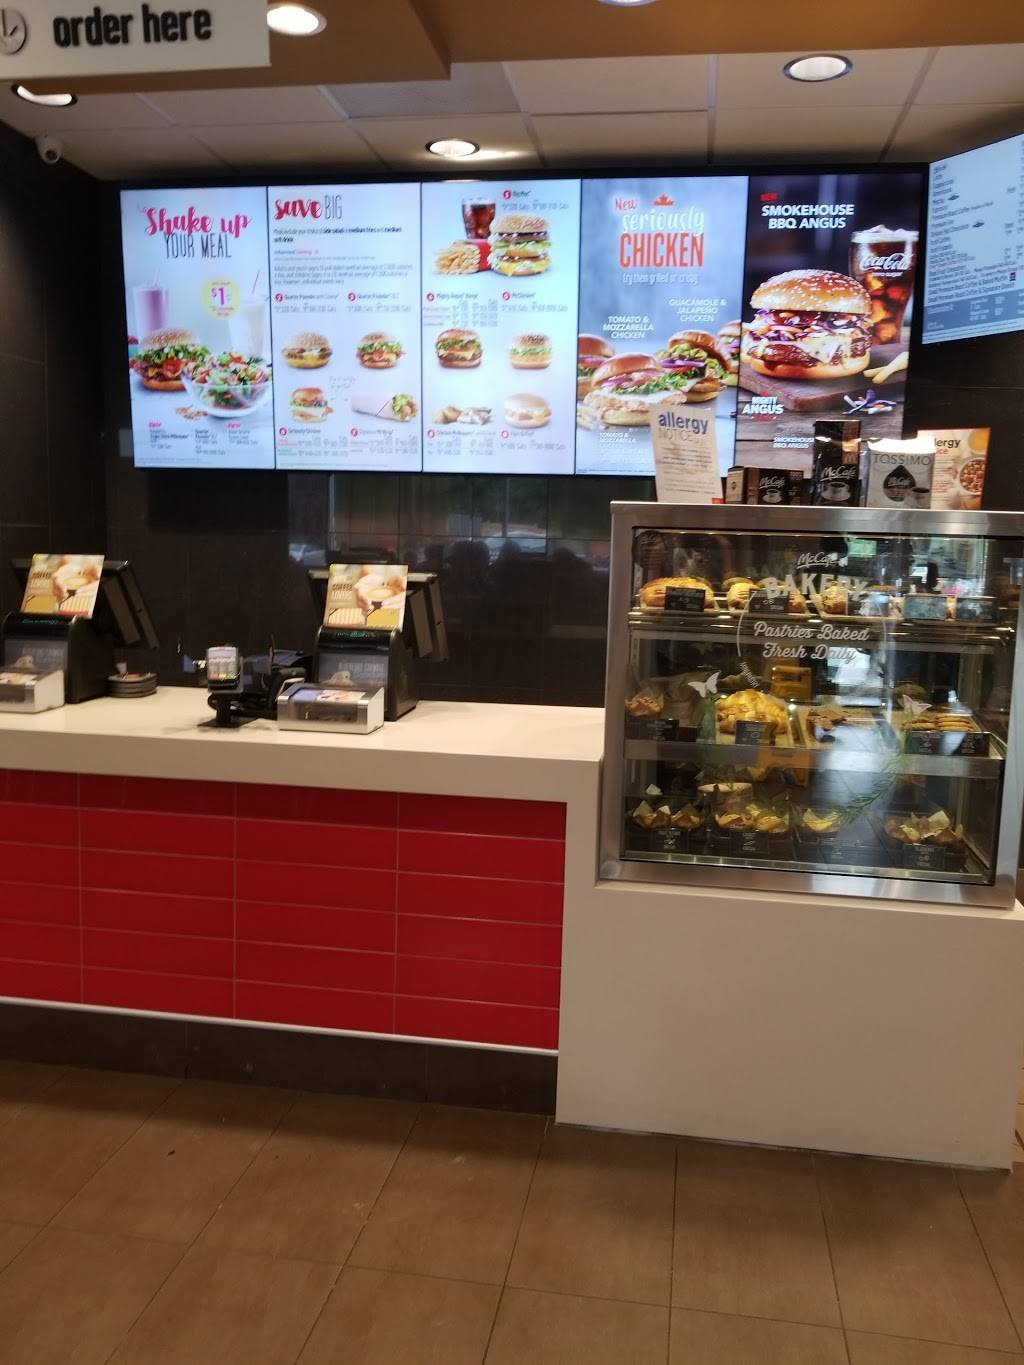 McDonalds | cafe | 515 Riddell Rd, Orangeville, ON L9W 5E5, Canada | 5199416267 OR +1 519-941-6267